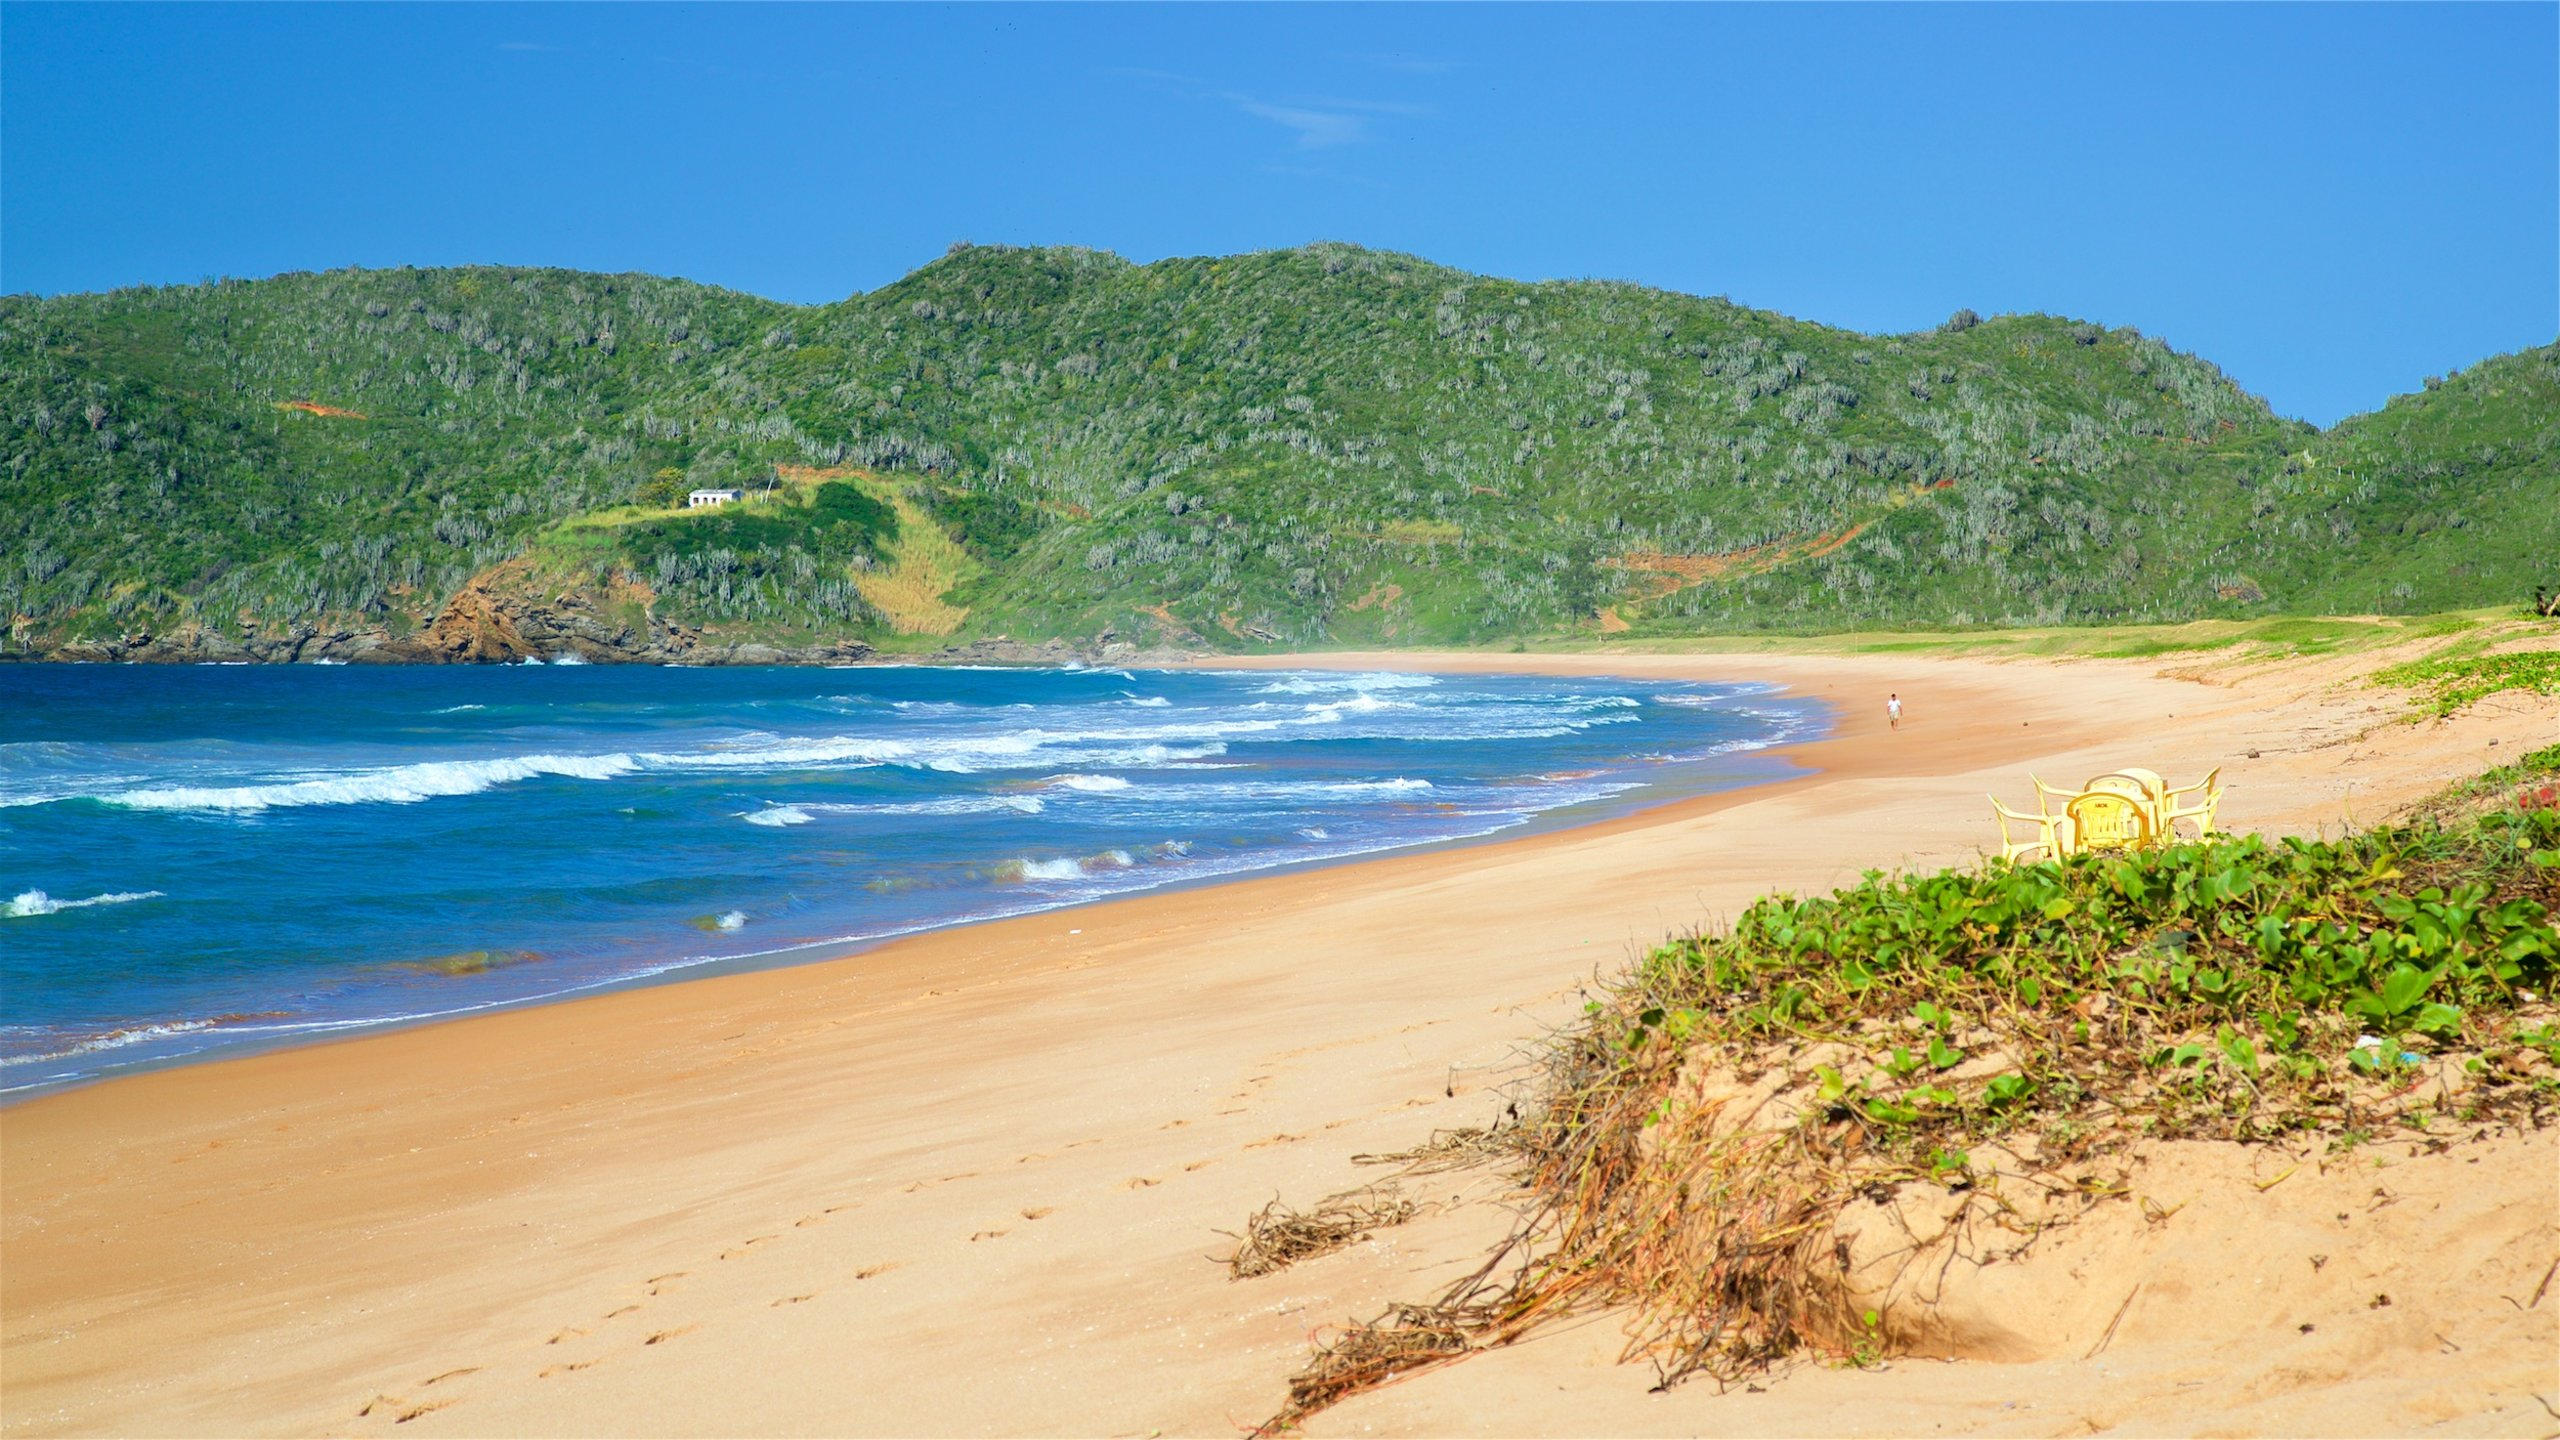 Go surfing on the large waves and watch hang gliders land on this remote strand in the shadow of a nature reserve.